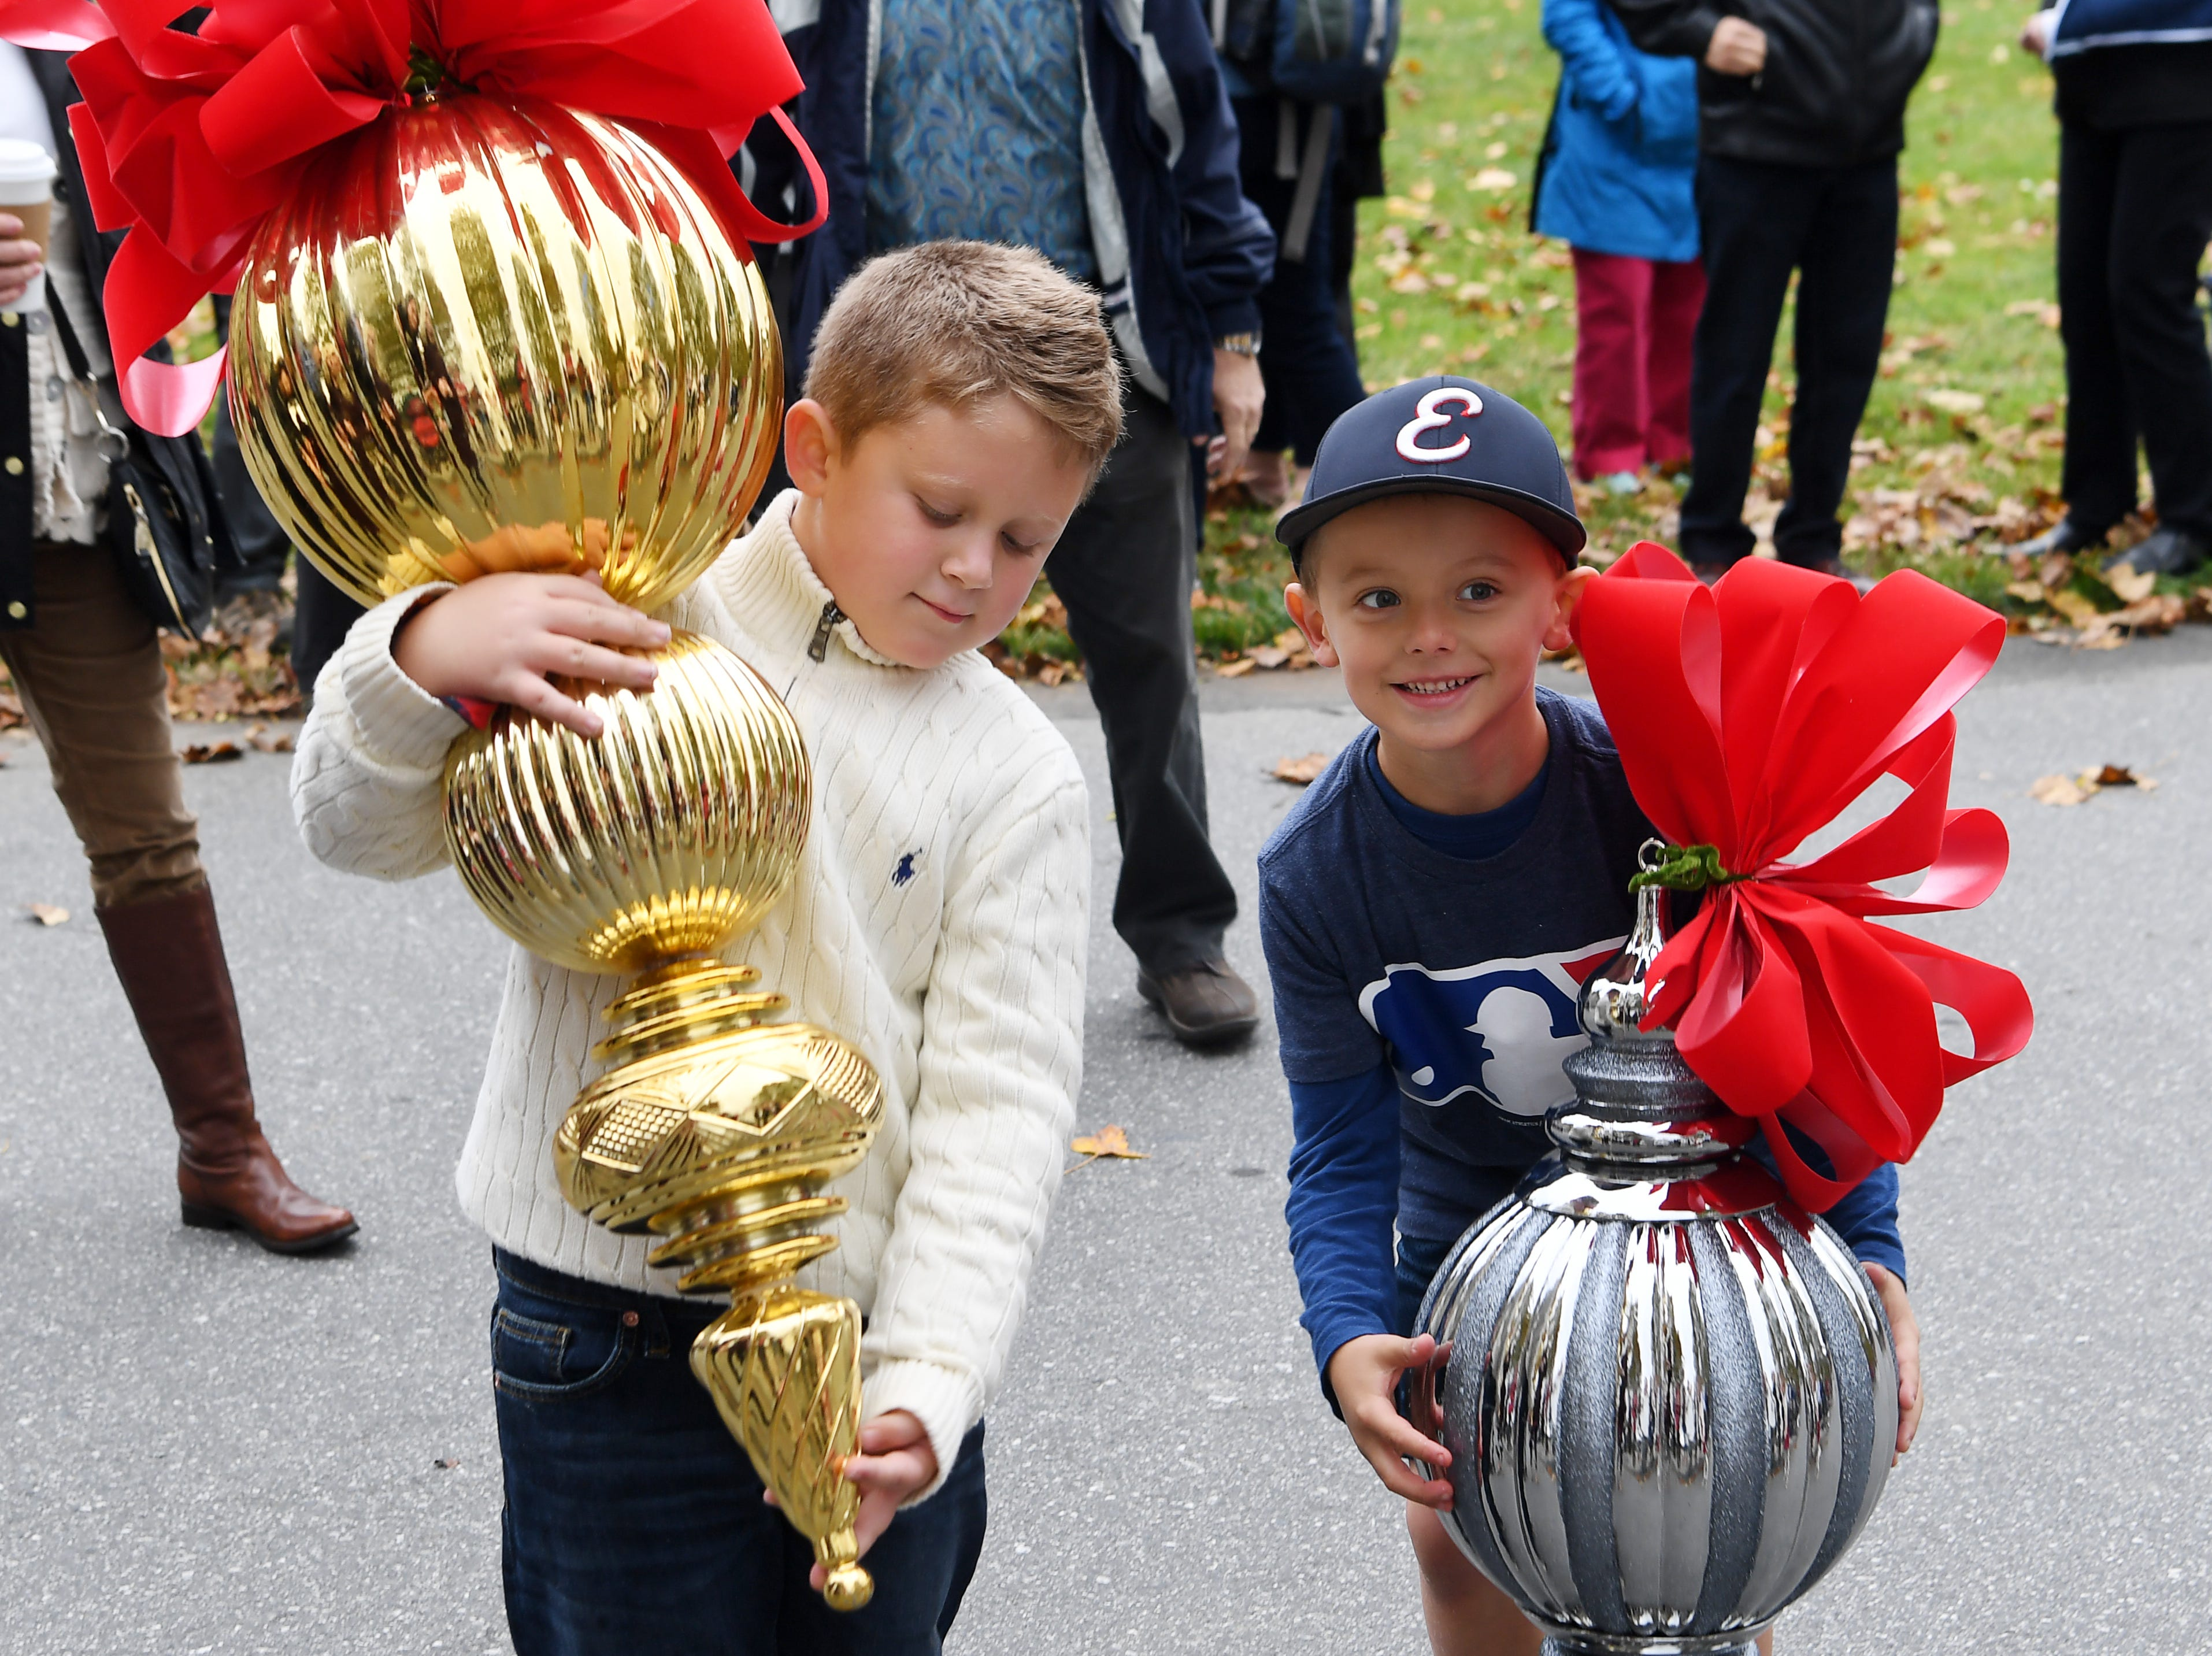 Ethan Johnson, left, and Landry Evans, both 6, pose for a photo holding large ornaments used by the Biltmore as they wait for the arrival of the Christmas tree Nov. 1, 2018.